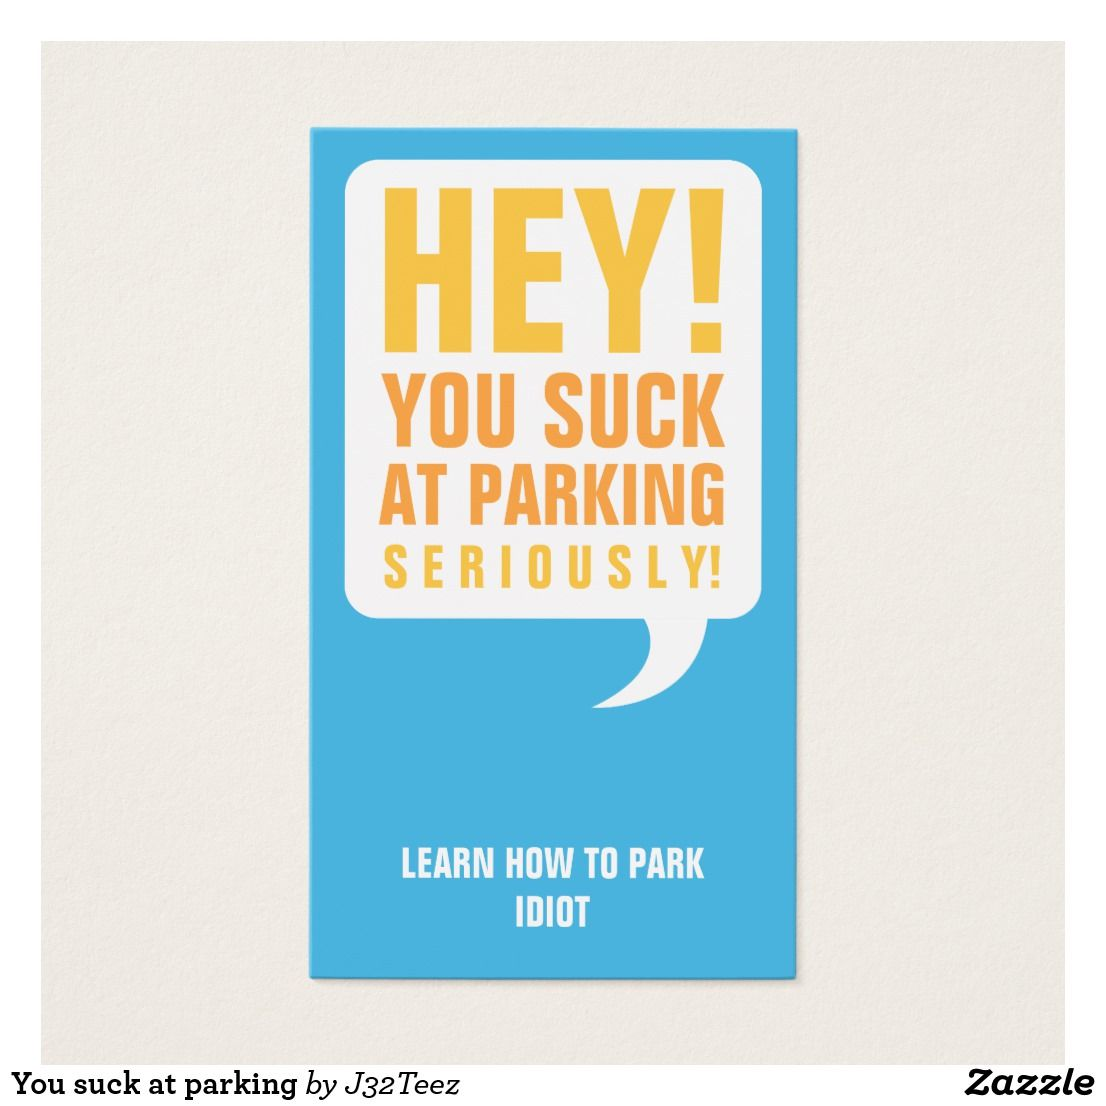 You suck at parking | Custom Funny Gifts | Pinterest